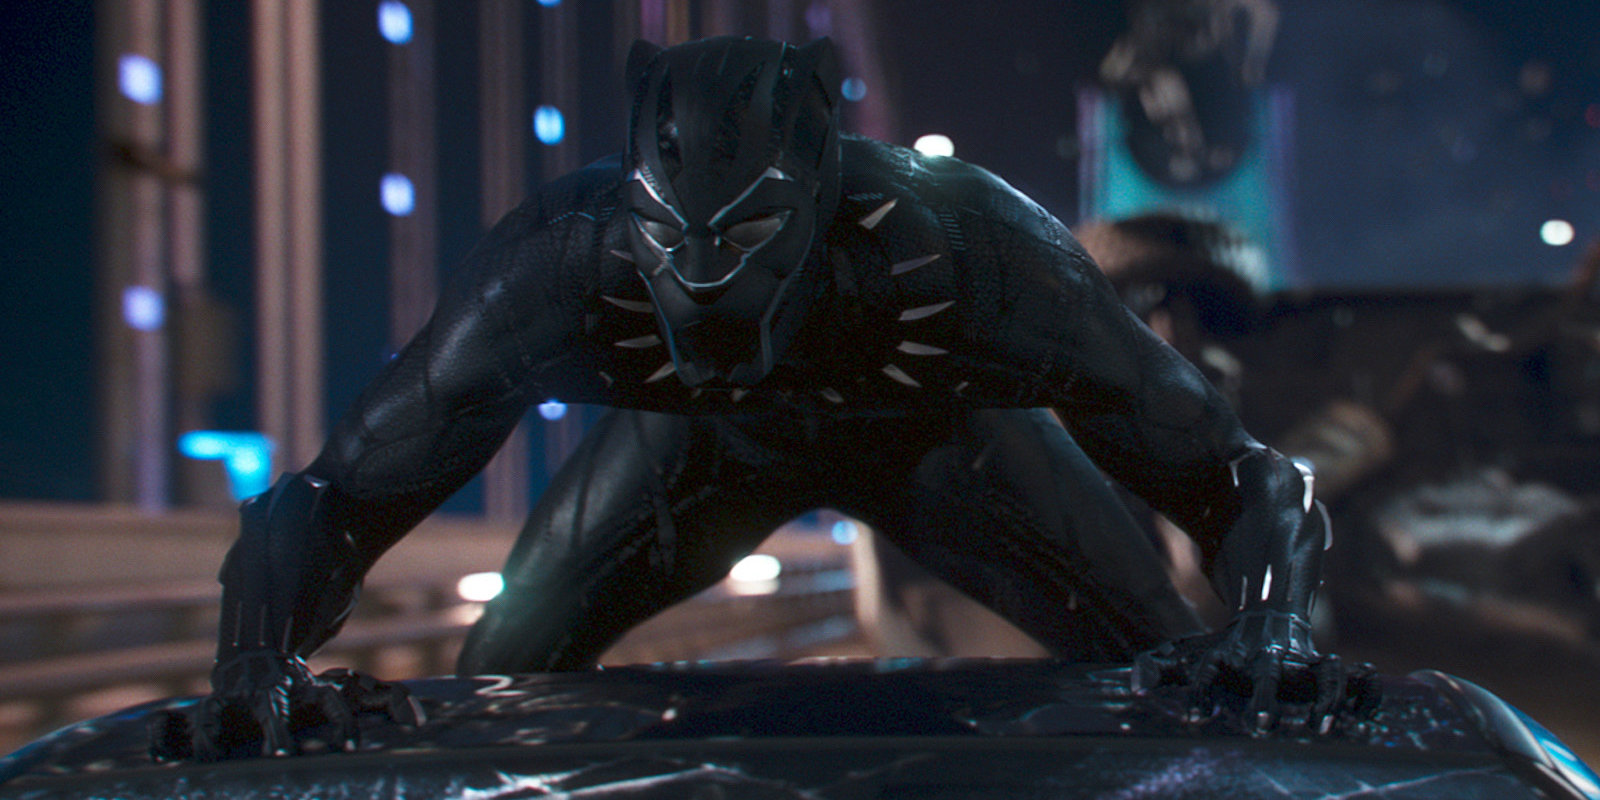 Rezultat iskanja slik za the black panther car chase